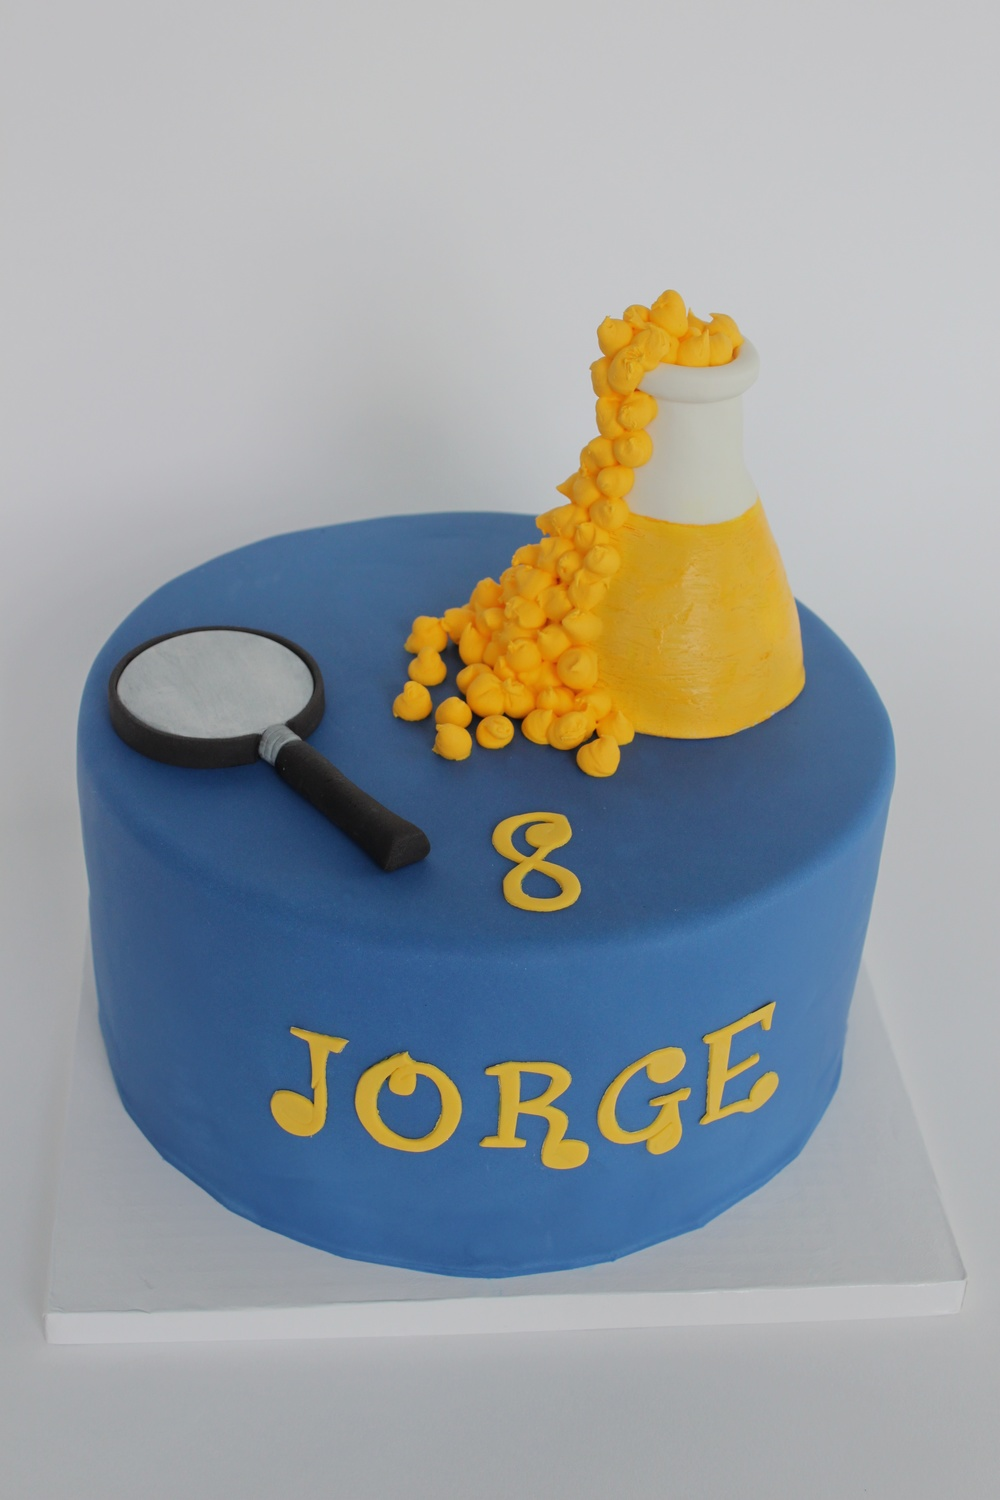 Science cake uncrop 9215.jpg